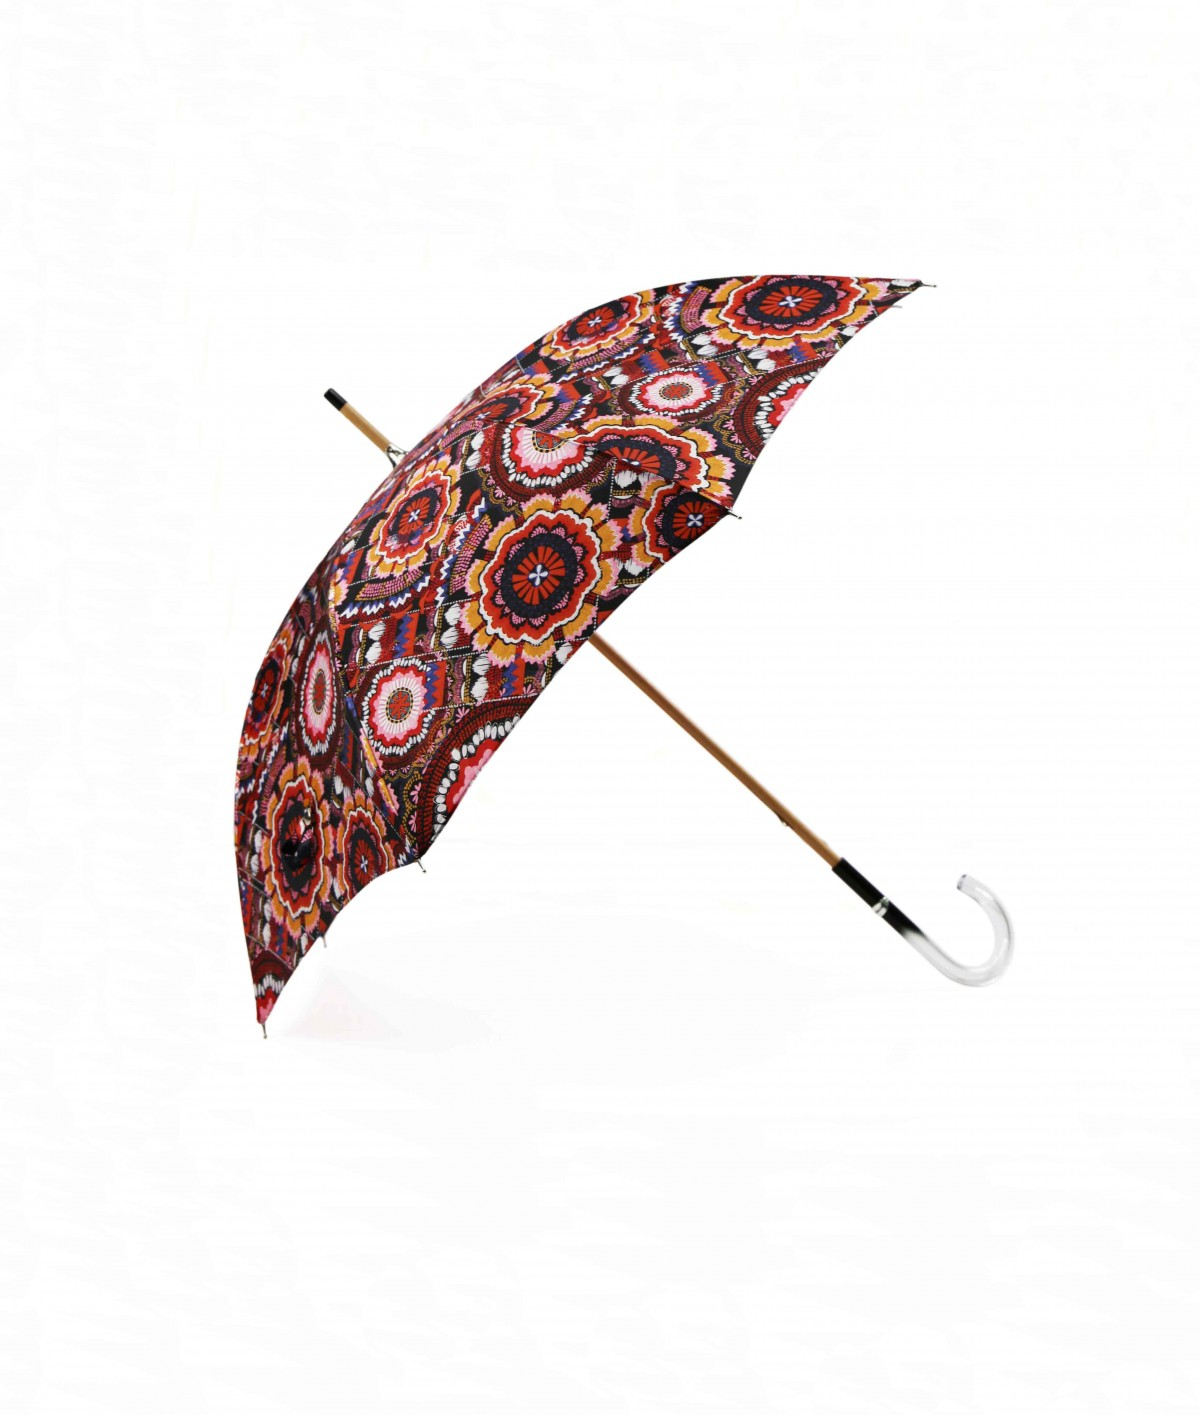 → Fancy Printed Satin Umbrella - Long Manual N°10 - Made in France by Maison Pierre Vaux French Umbrella Manufacturer